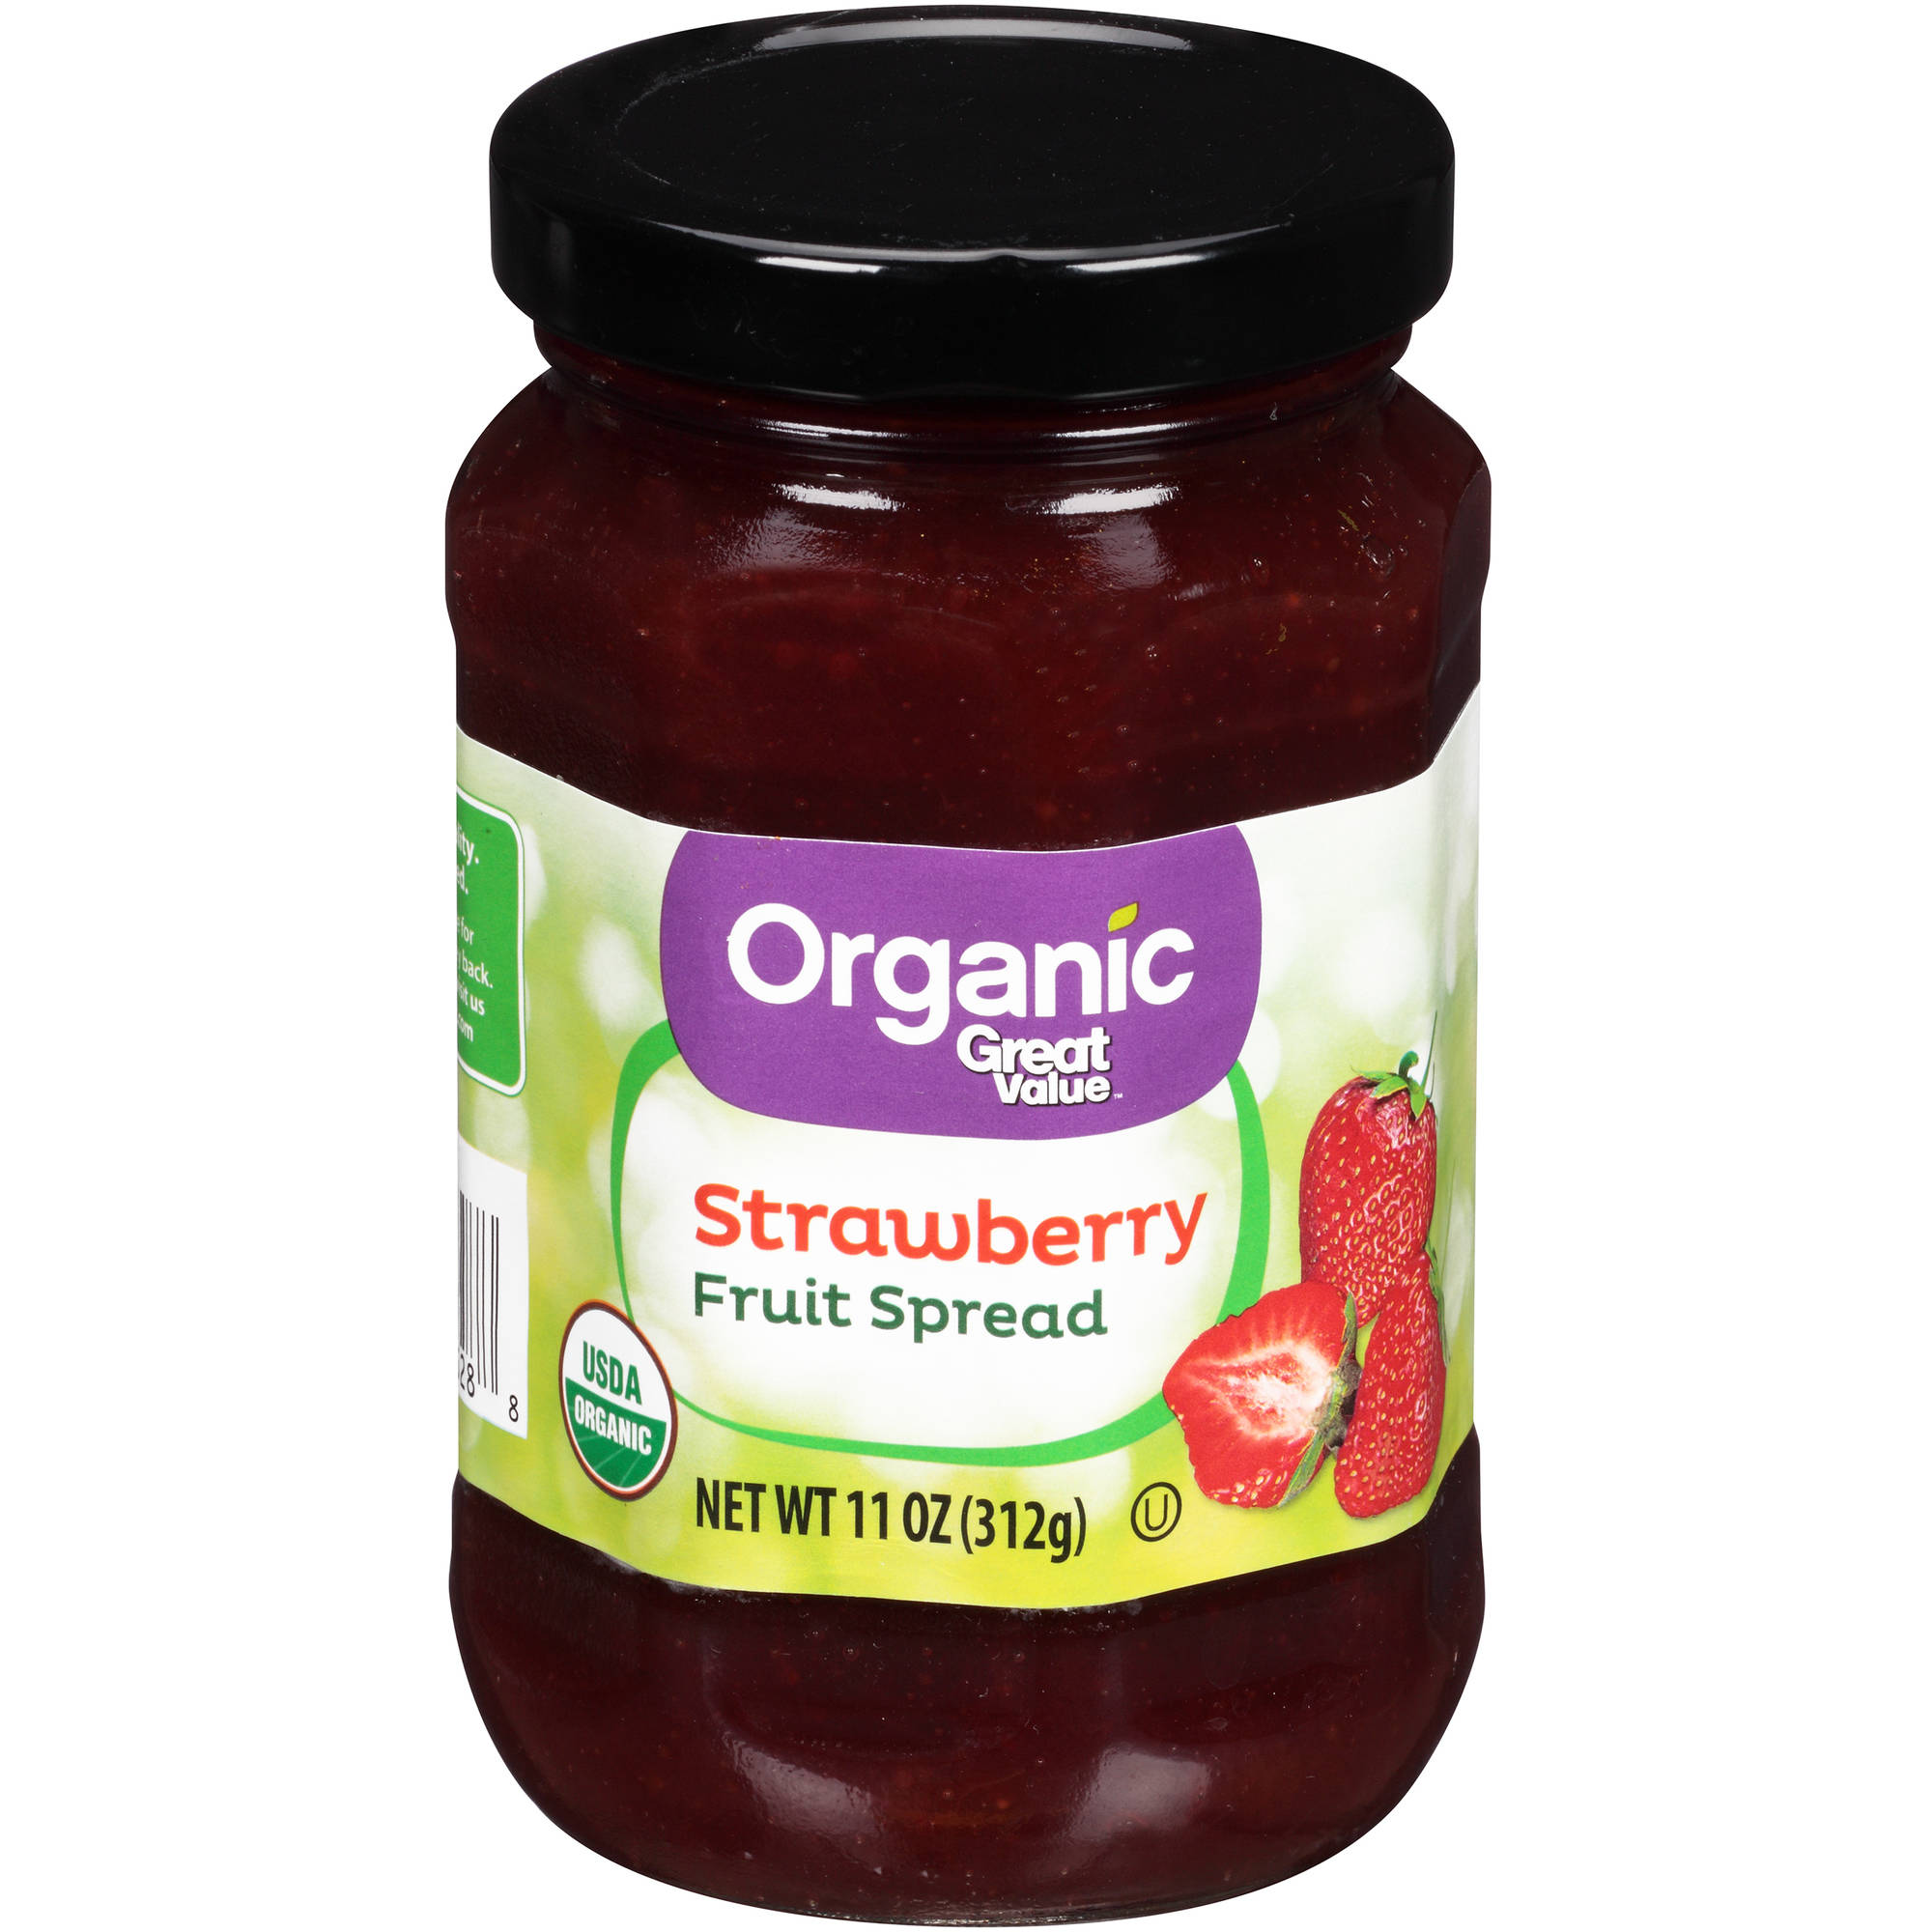 Great Value Organic Strawberry Fruit Spread